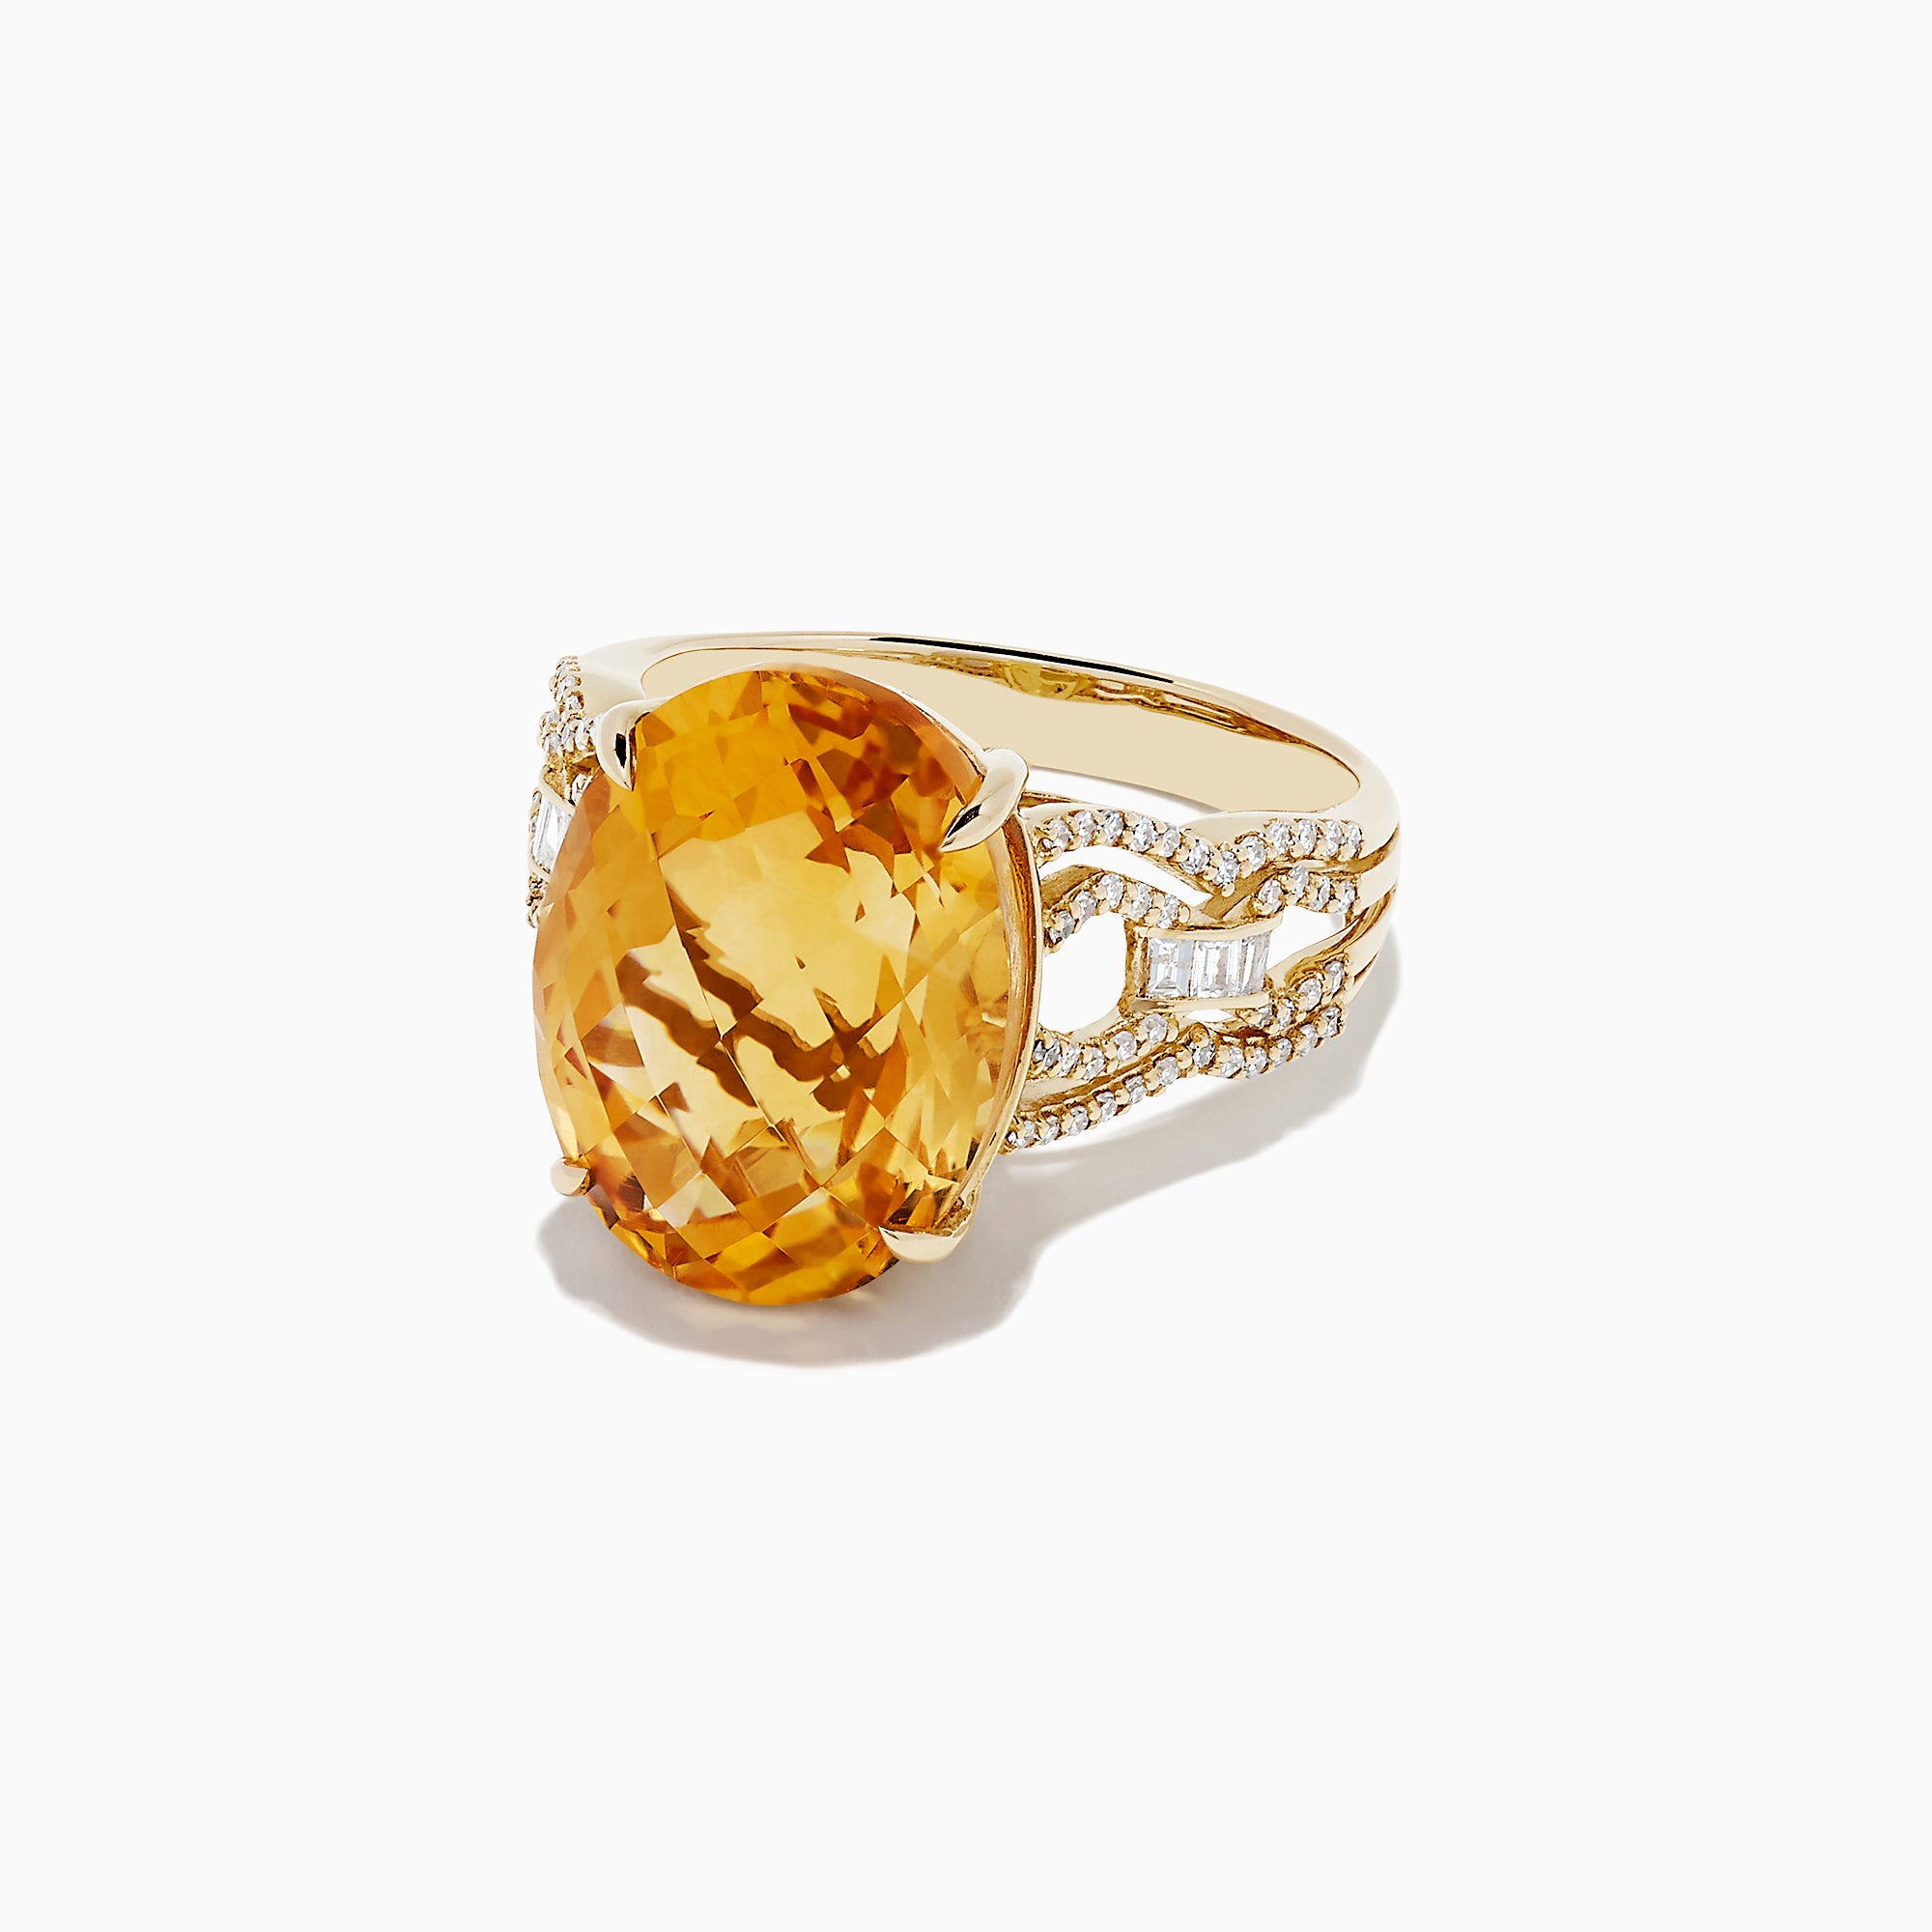 Effy Sunset 14K Yellow Gold Citrine and Diamond Cocktail Ring, 9.72 TCW